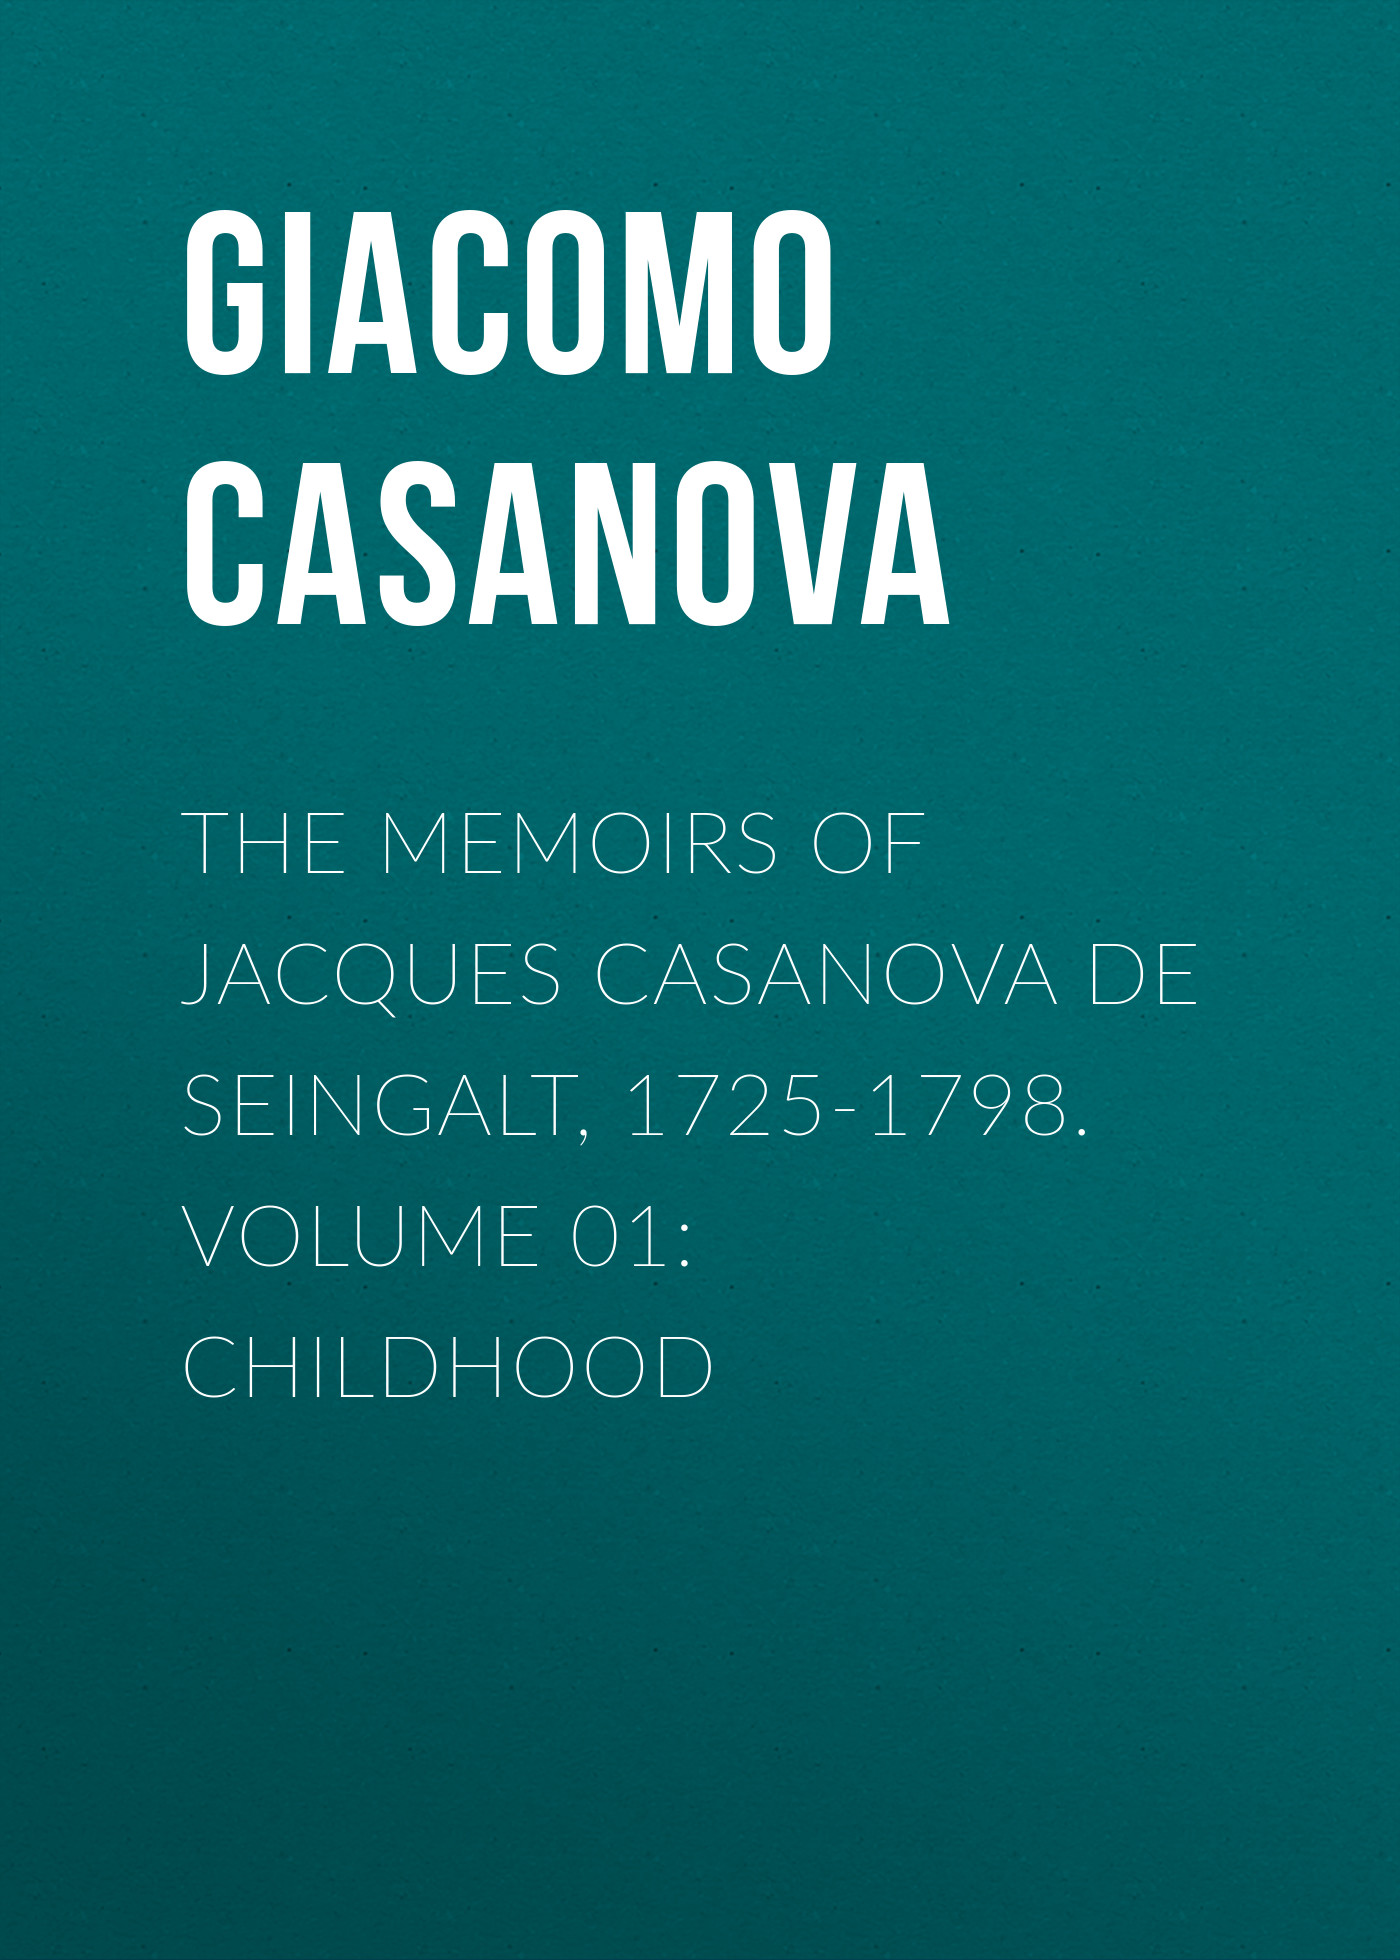 Giacomo Casanova The Memoirs of Jacques Casanova de Seingalt, 1725-1798. Volume 01: Childhood giacomo casanova the memoirs of jacques casanova de seingalt 1725 1798 volume 30 old age and death